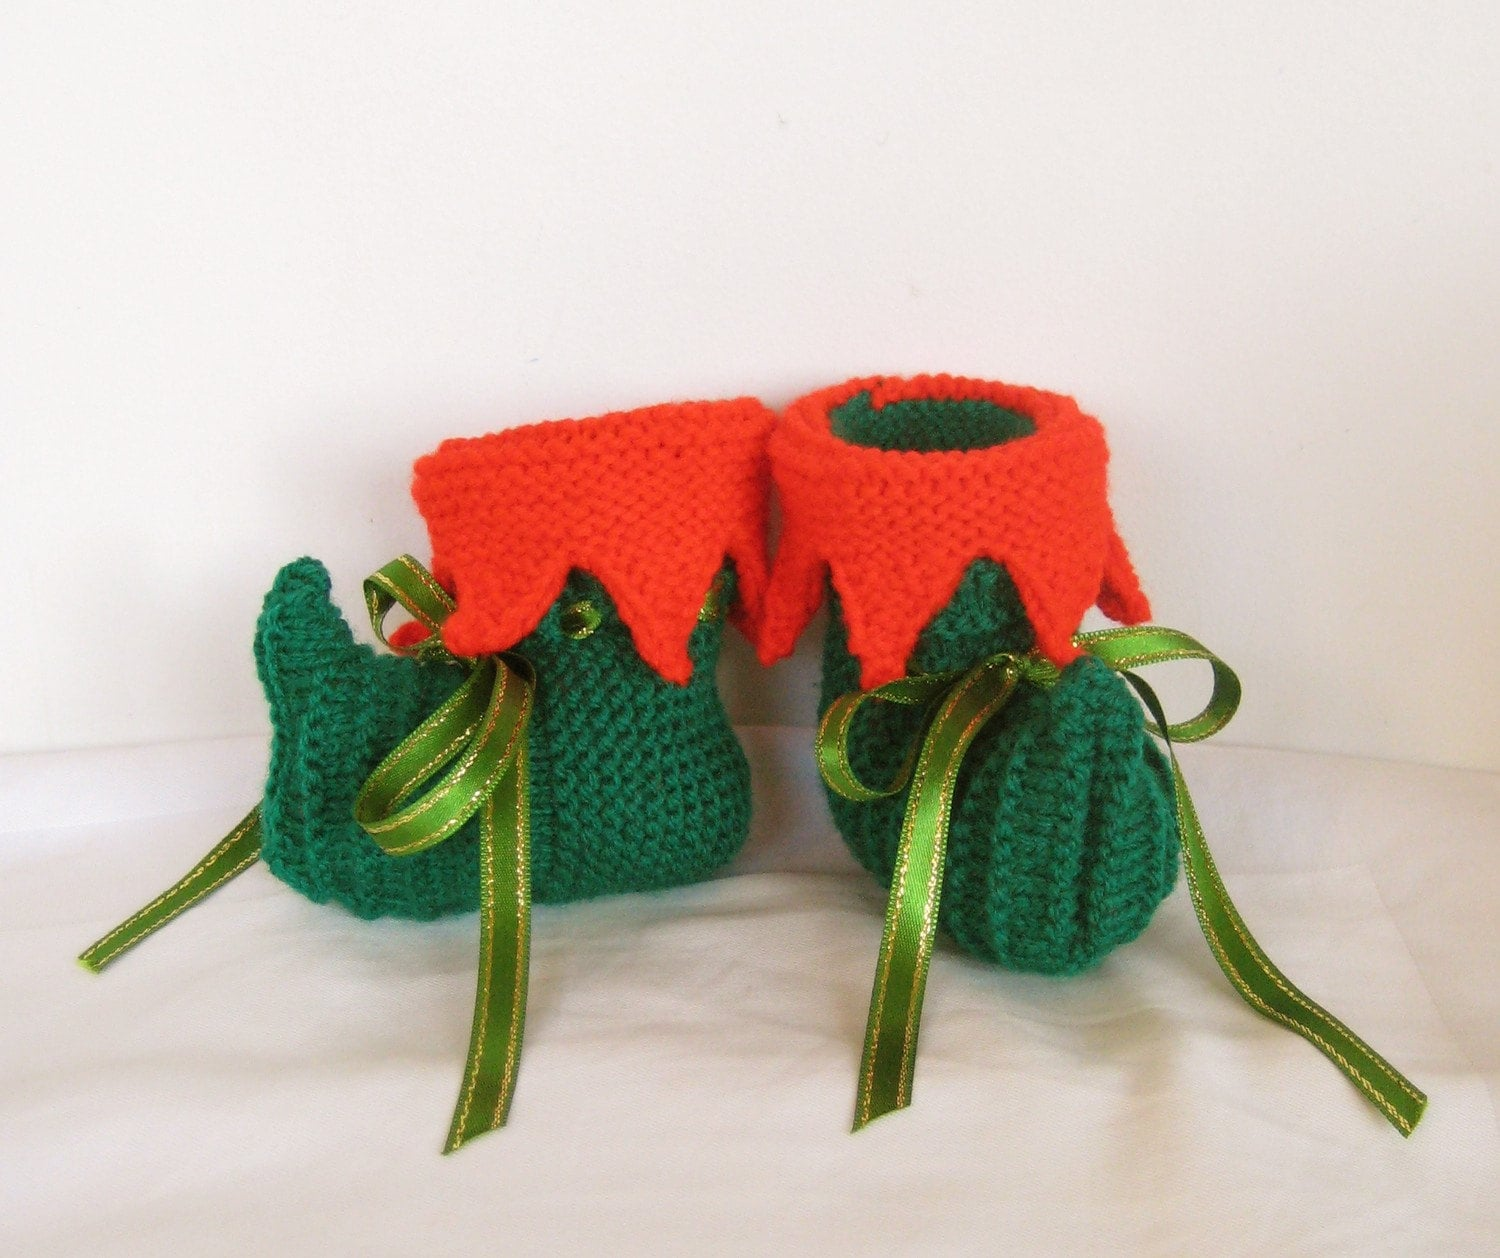 Knitting Pattern For Baby Elf Shoes : Items similar to handmade knit Christmas Elf baby shoes booties - made to ord...